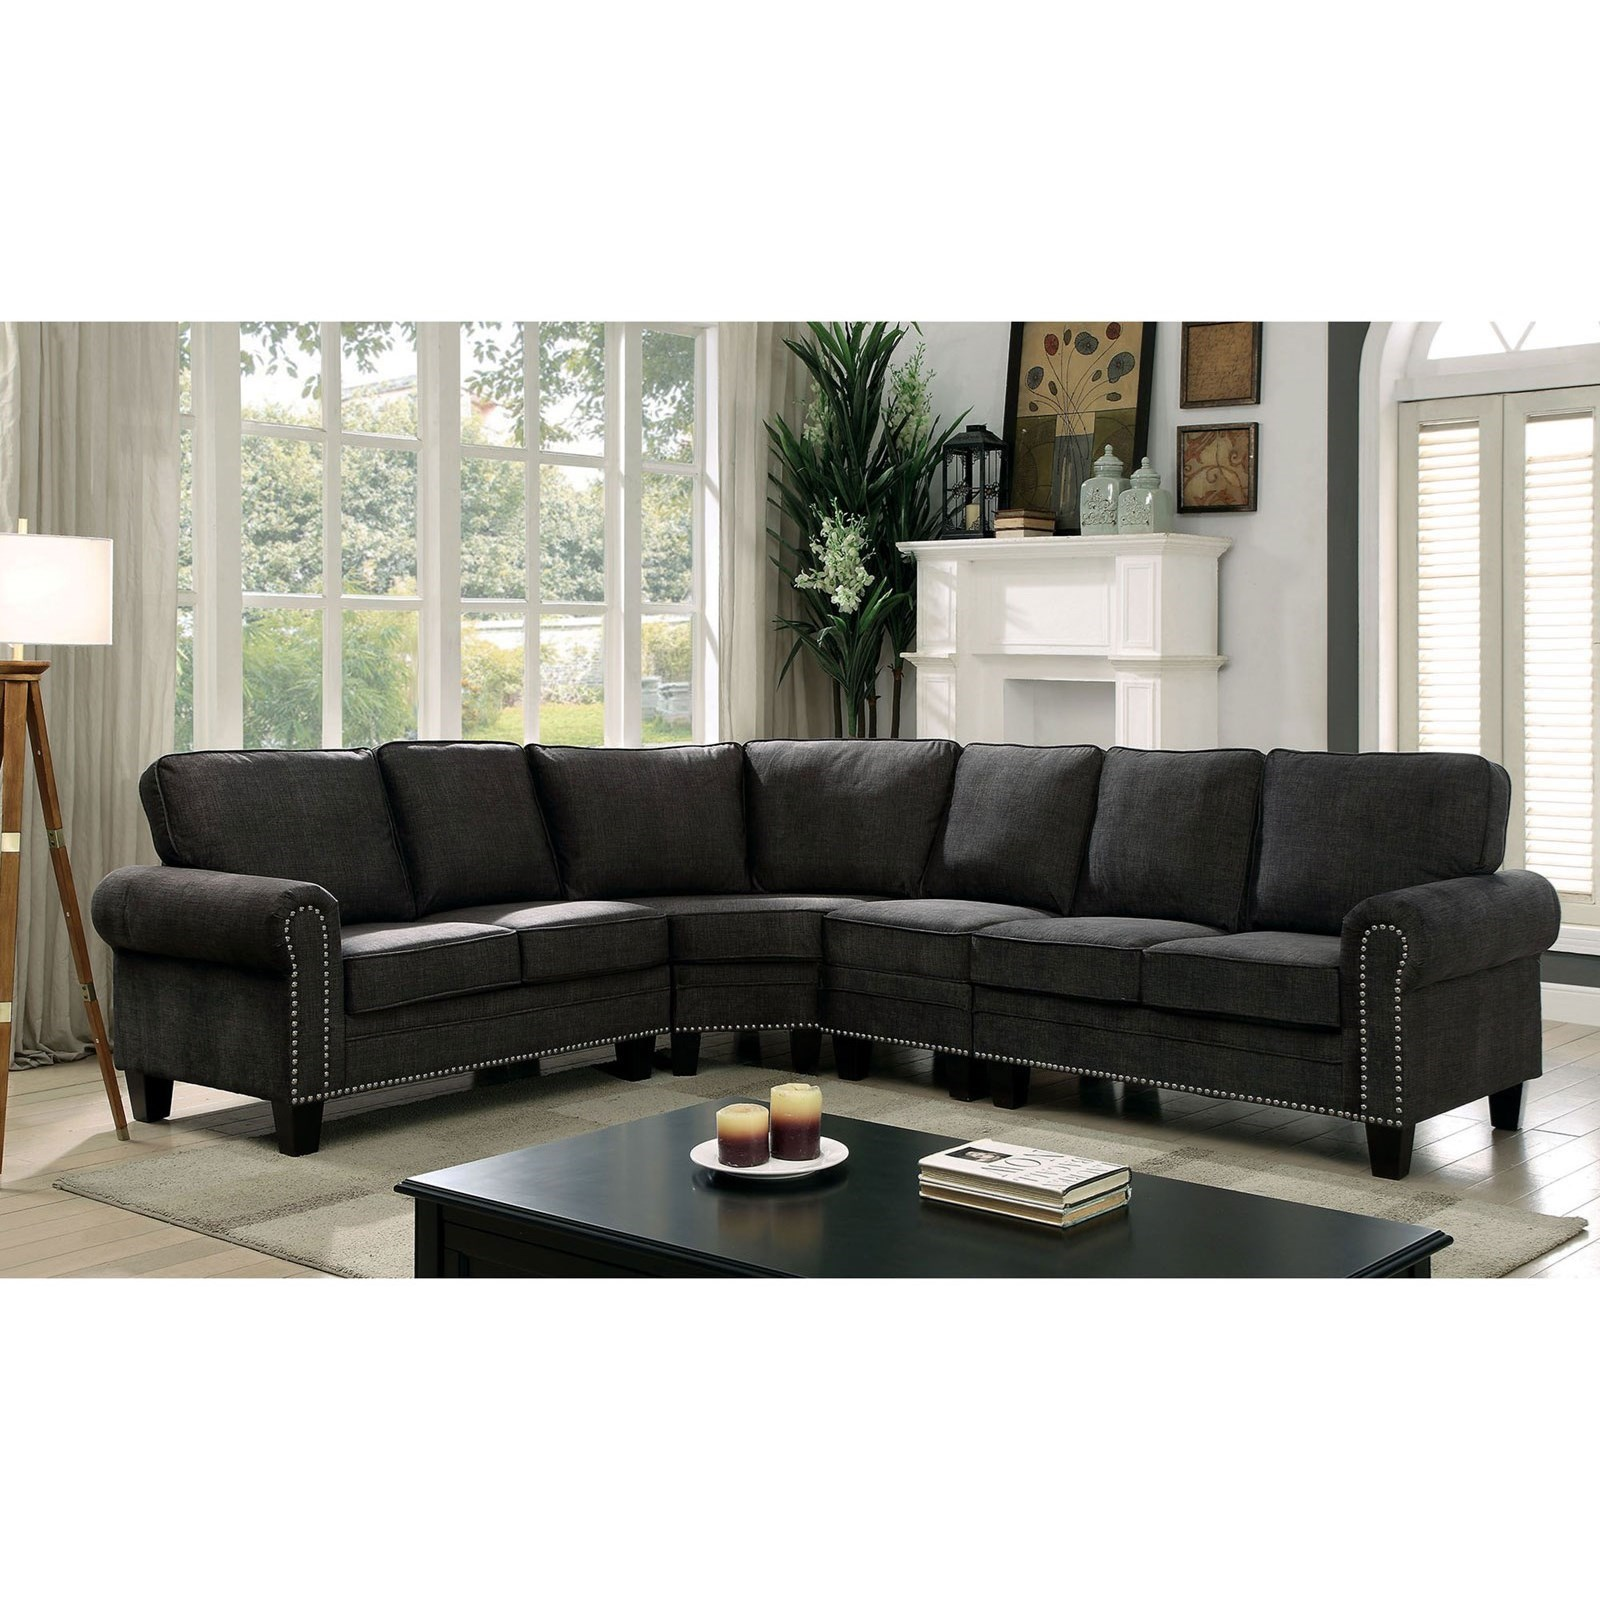 Stupendous Elwick Transitional Five Seat Sectional Sofa With Nailheads By Furniture Of America At Rooms For Less Creativecarmelina Interior Chair Design Creativecarmelinacom